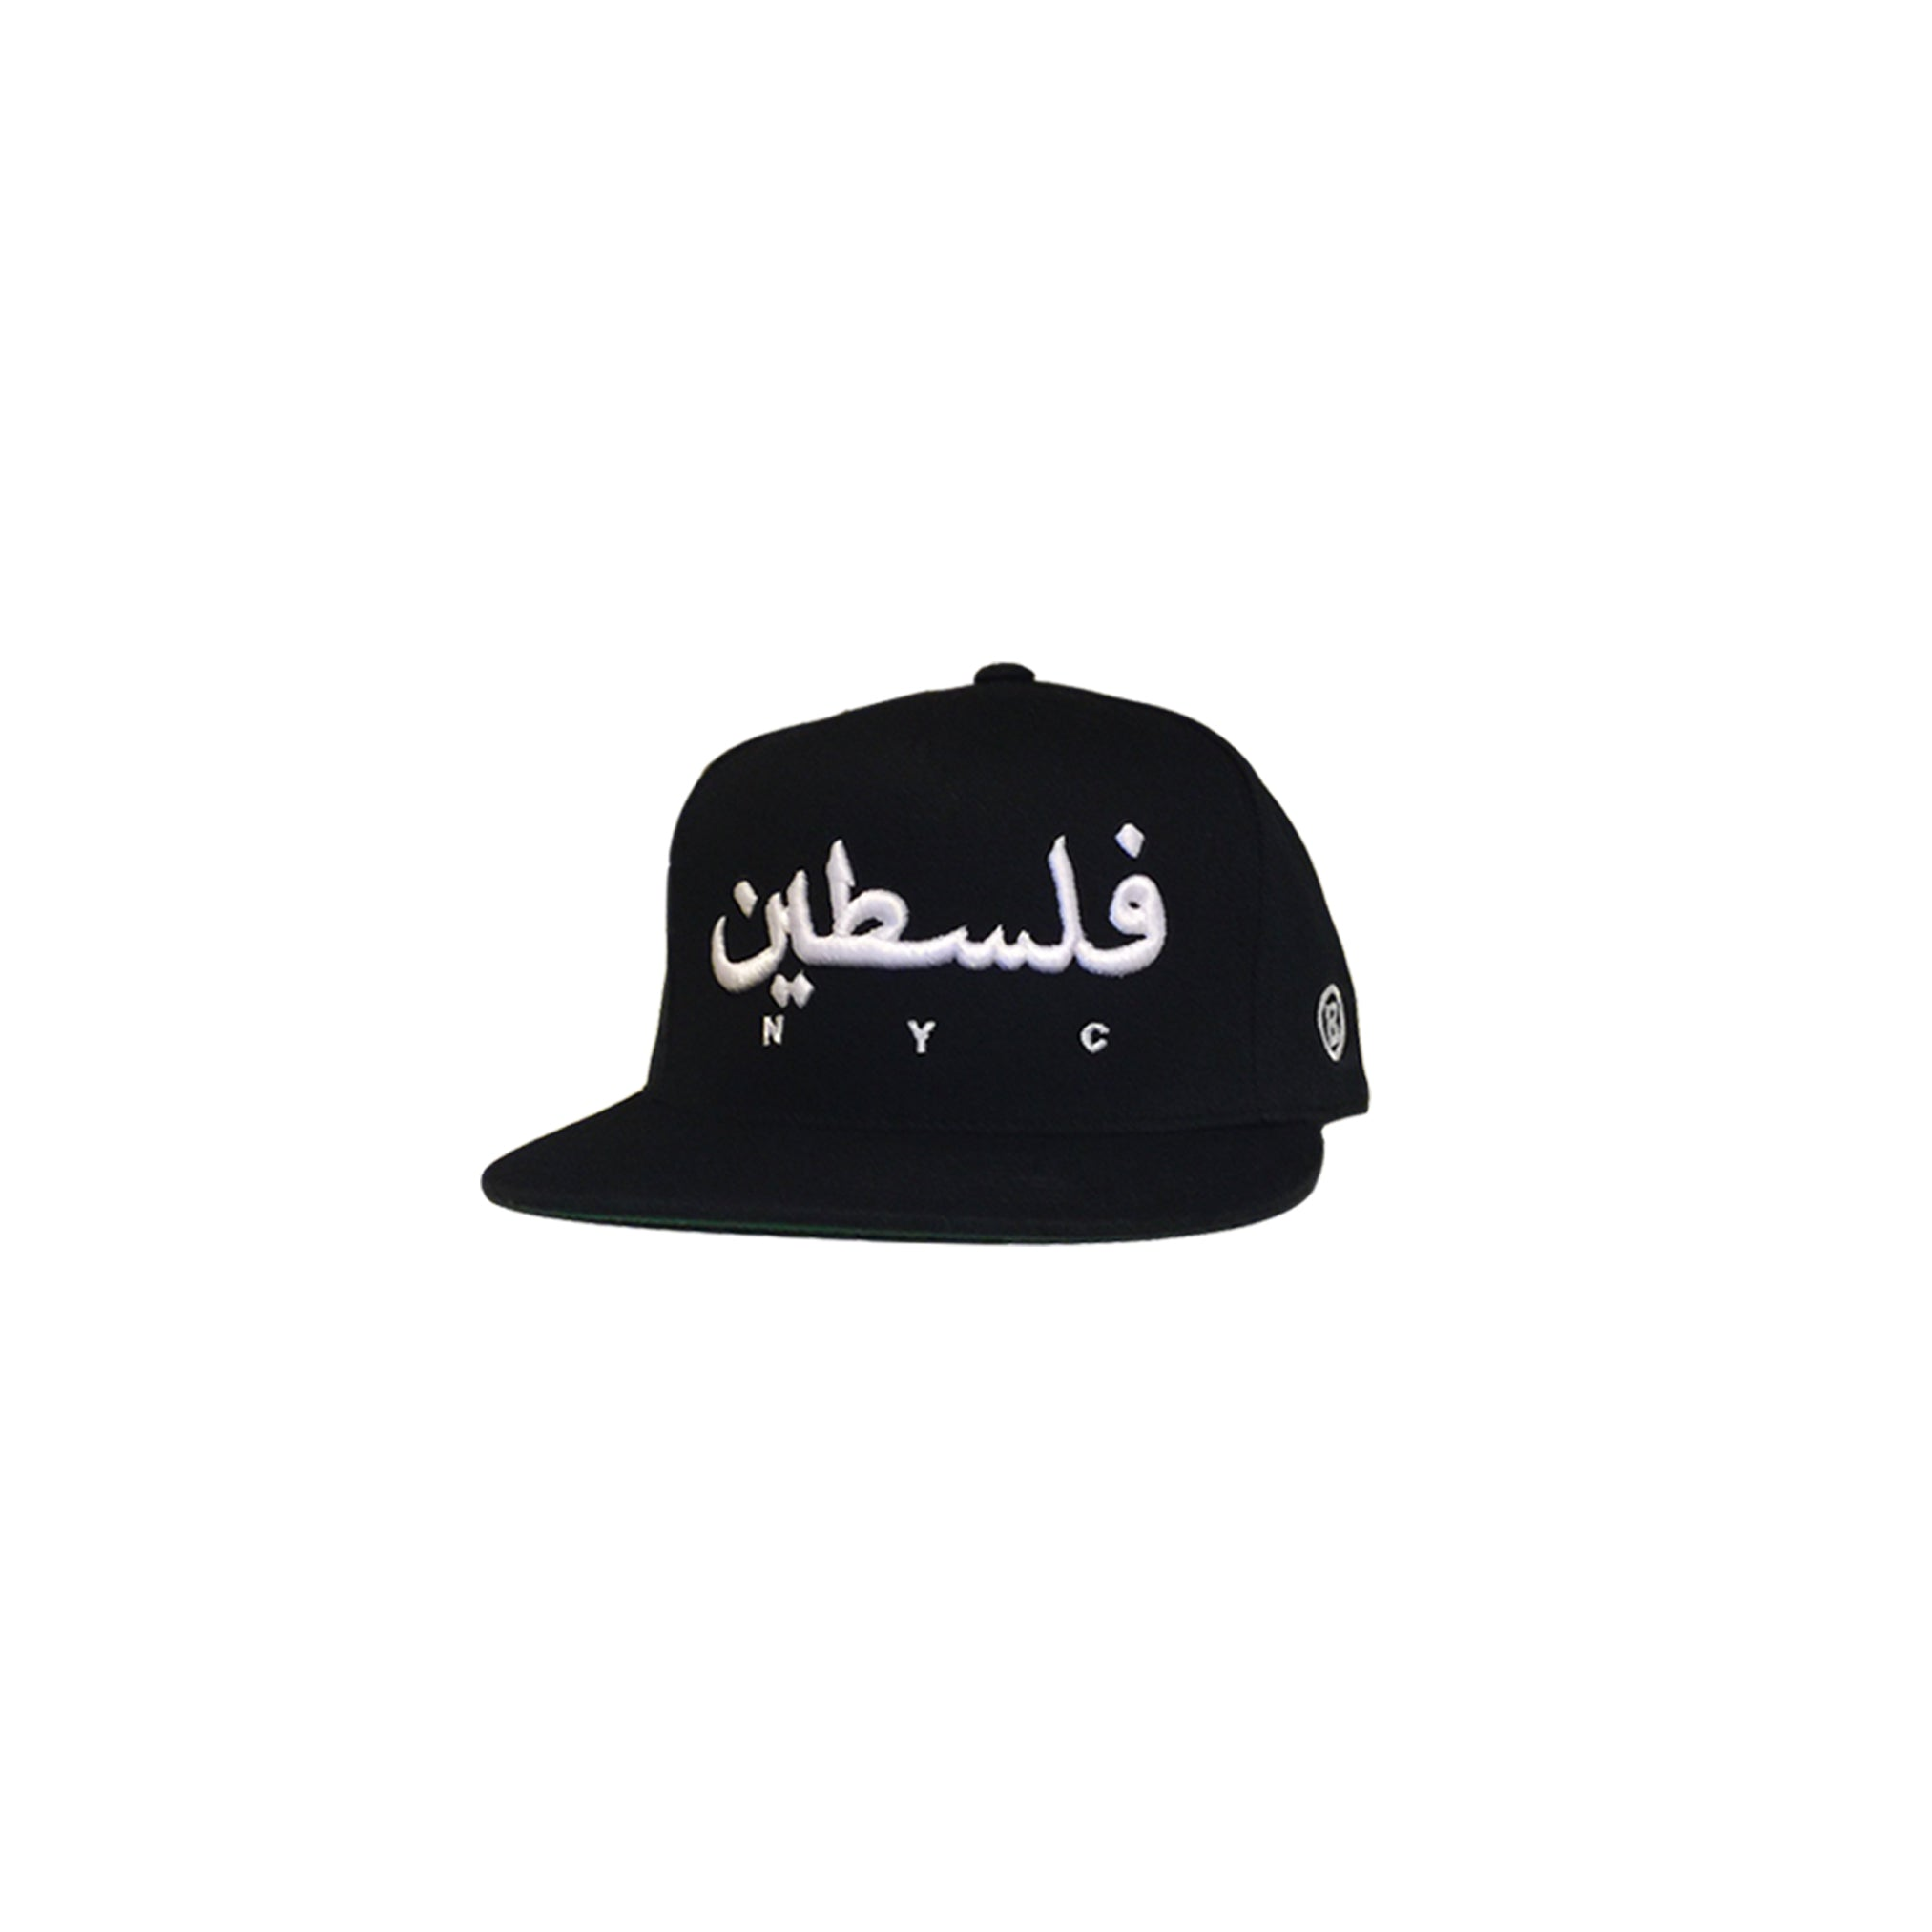 Brutallic Streetwear nyc brand supreme highsnob kappa hats dad hats hoodies tracksuit luxury gucci fear of god yeezy brand independent hypebeast Palestine